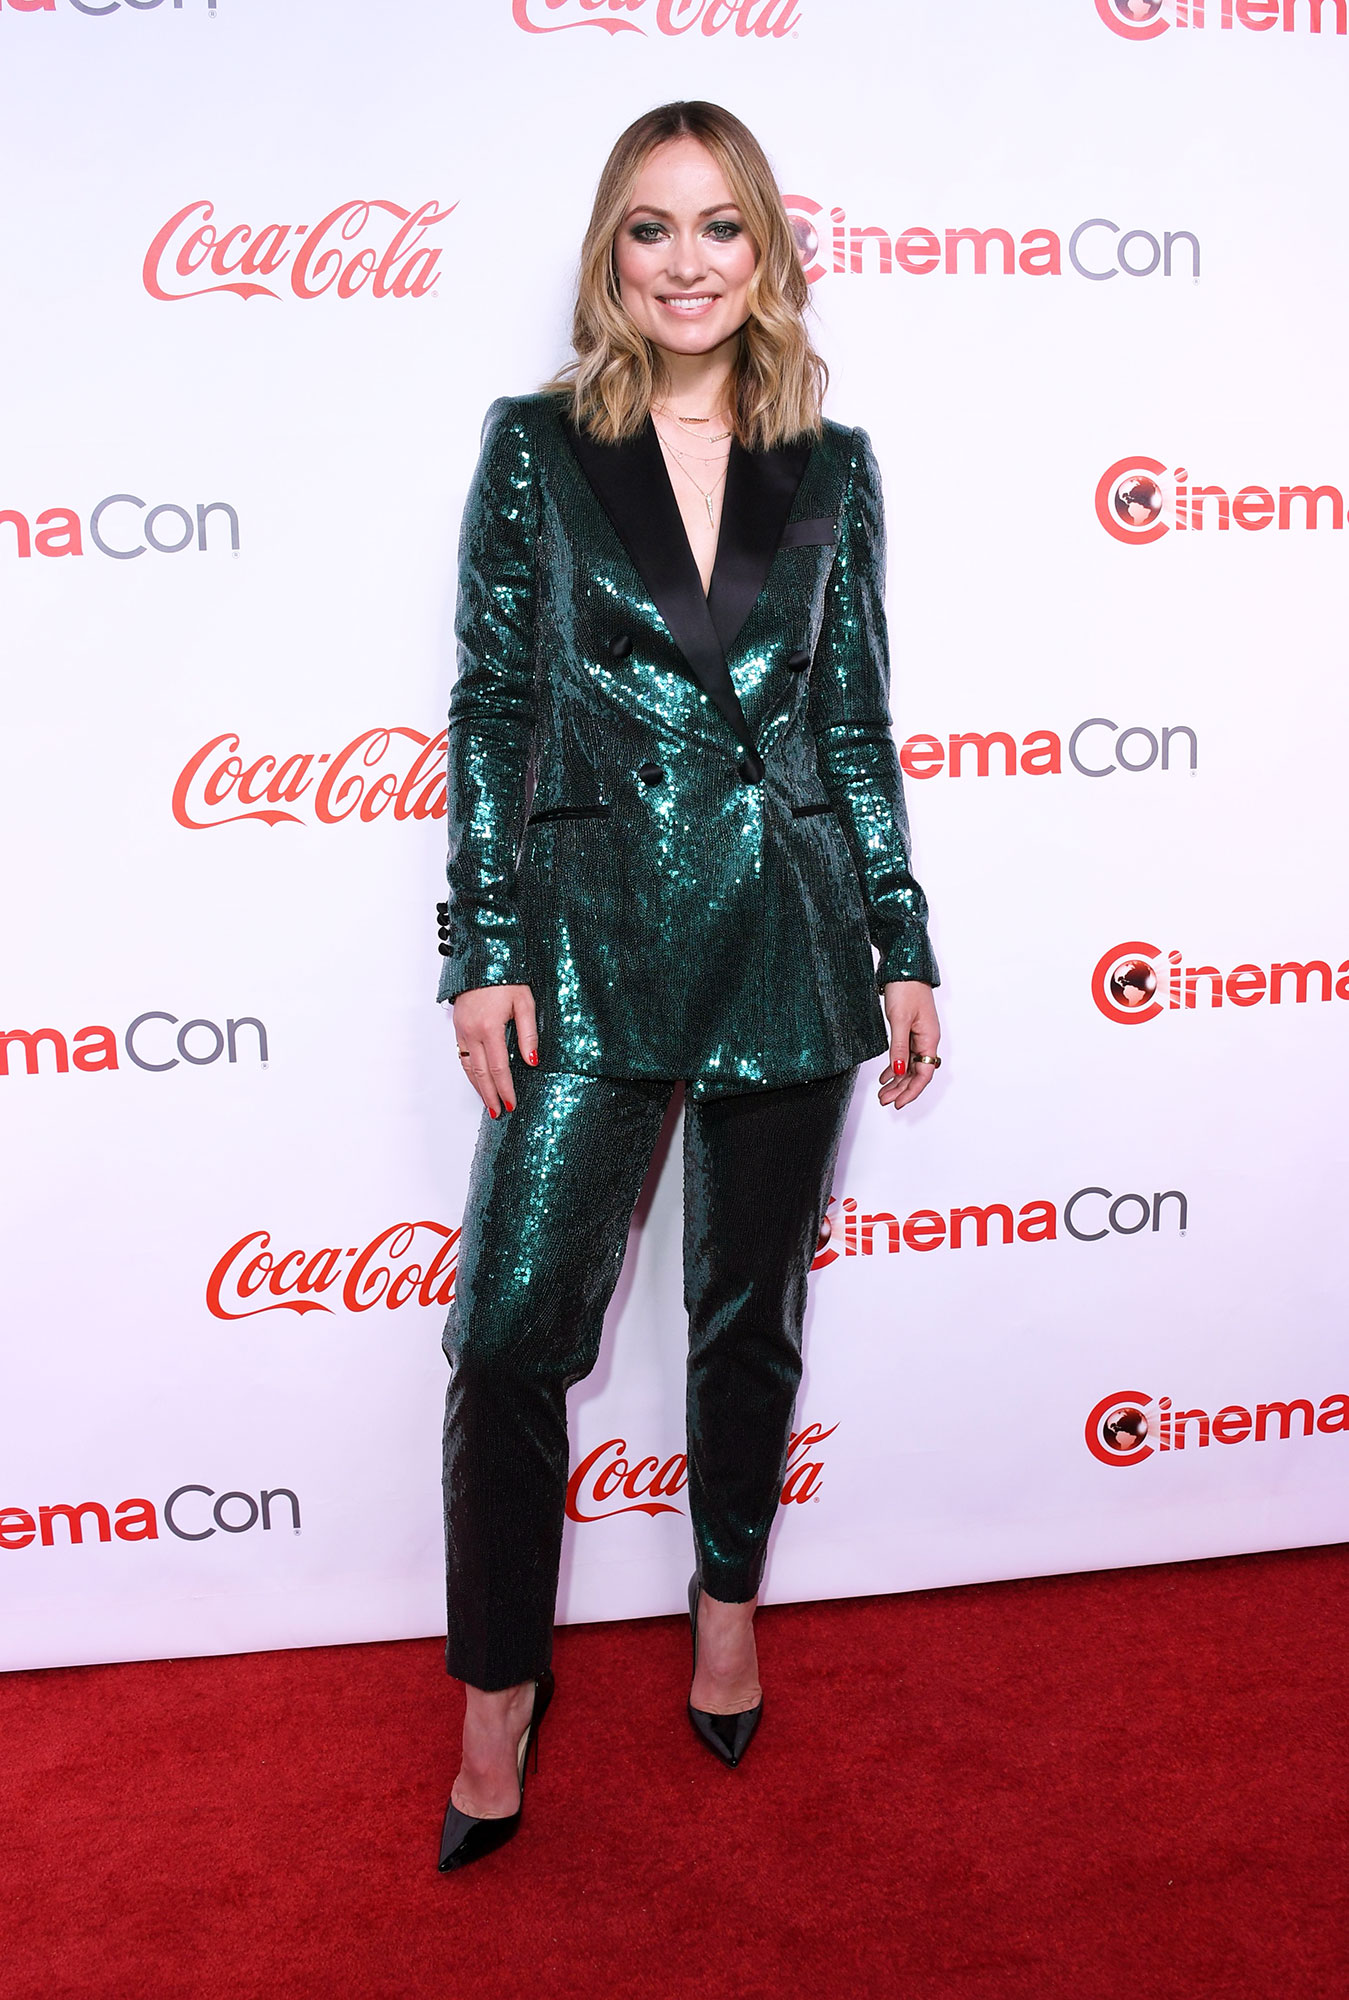 Olivia Wilde The Stars Are Bringing Their Style A-Game to CinemaCon - It was all about the sparkle for the Booksmart director on Thursday, April 4, in an Elie Saab sequined tux.